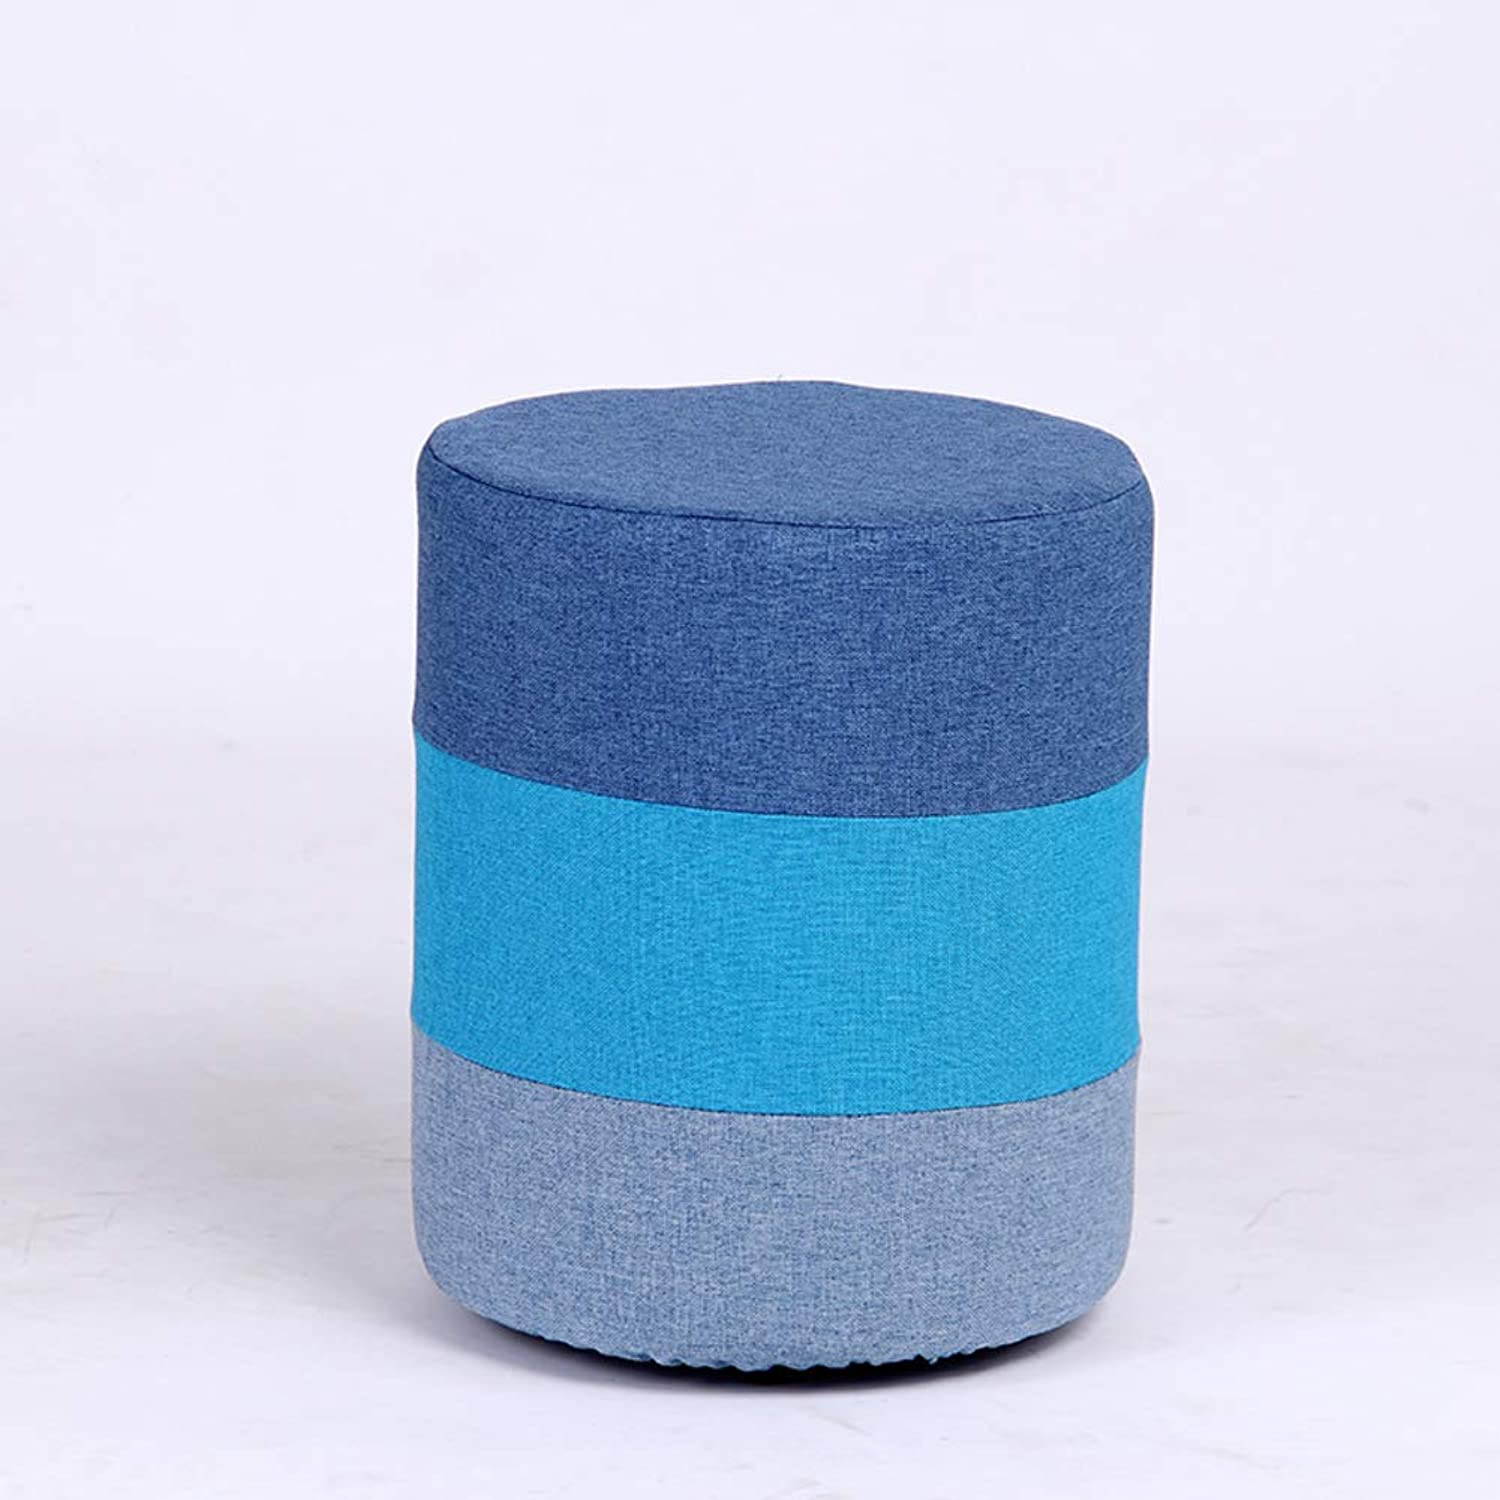 Simple Nordic Footrest Stool, Small Round Rainbow shoes Changing Bench-bluee 29x35cm(11x14inch)